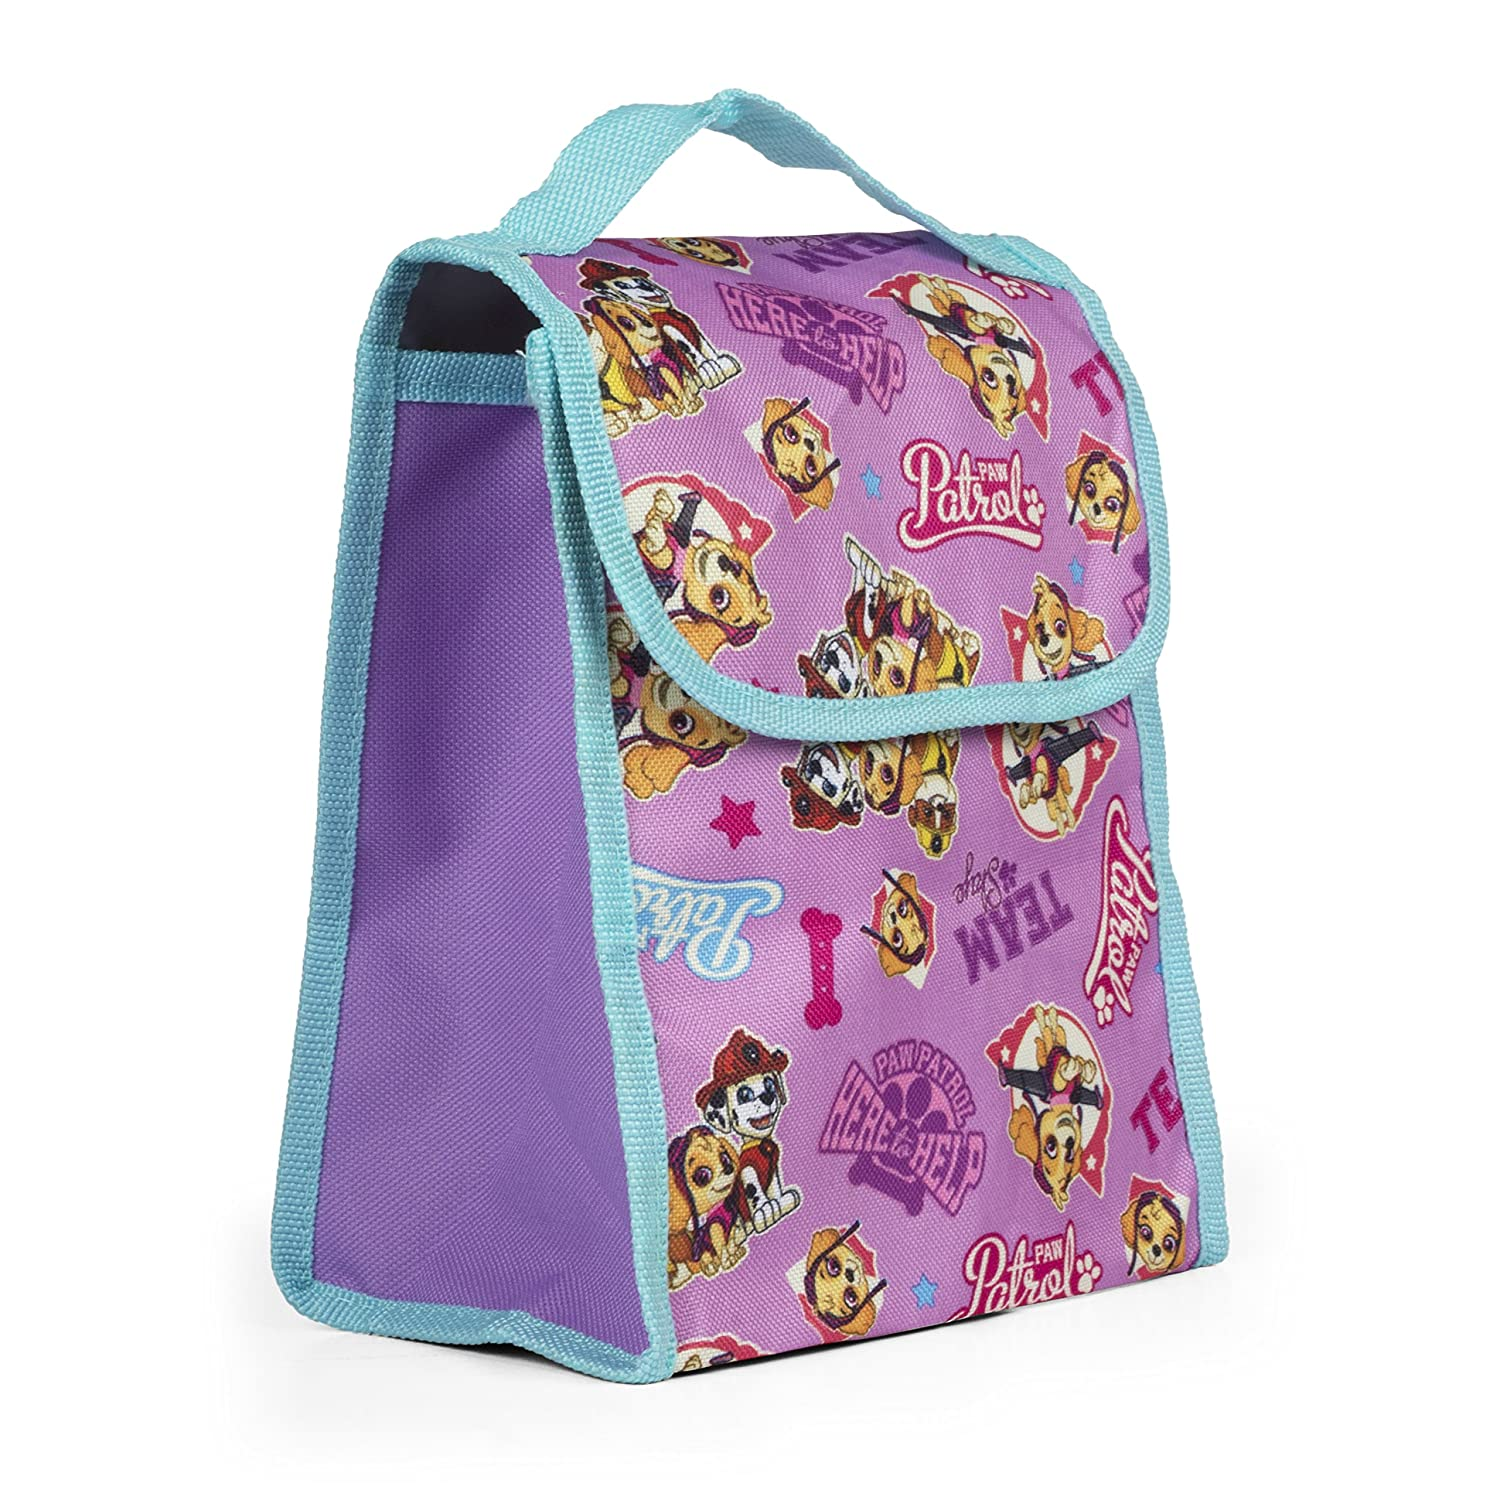 Nickelodeon Paw Patrol Girls Purple Insulated Lunch Bag, Reusable Outdoor Travel Picnic School Lunch Box Collapsible Tote Bag with Front Pocket, Foldable & Multi-use for Kids KADPPGLK